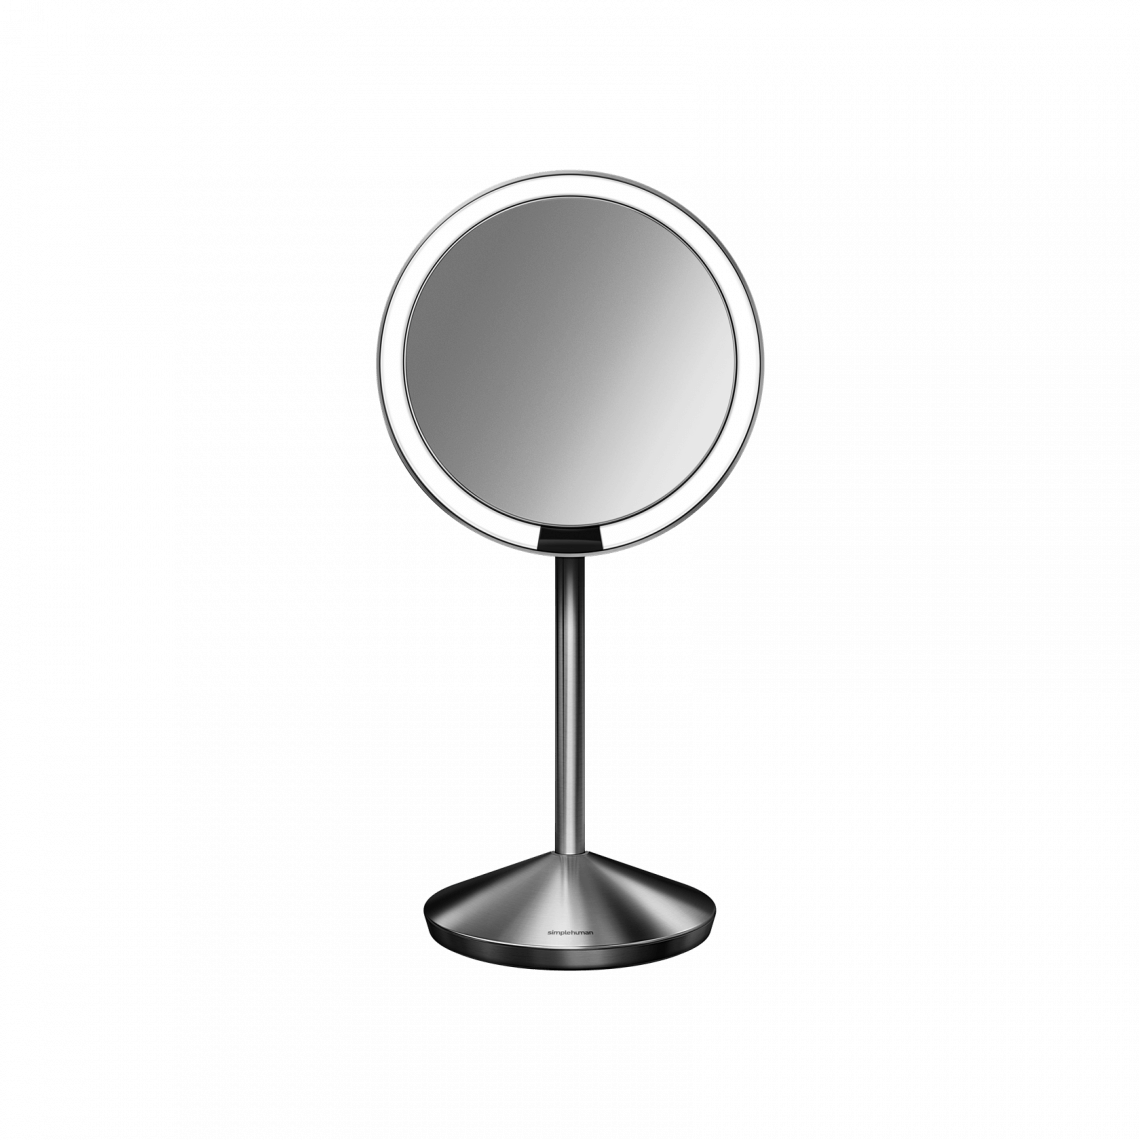 Conair Makeup Mirror | Cordless Lighted Makeup Mirror | Conair Lighted Makeup Mirror